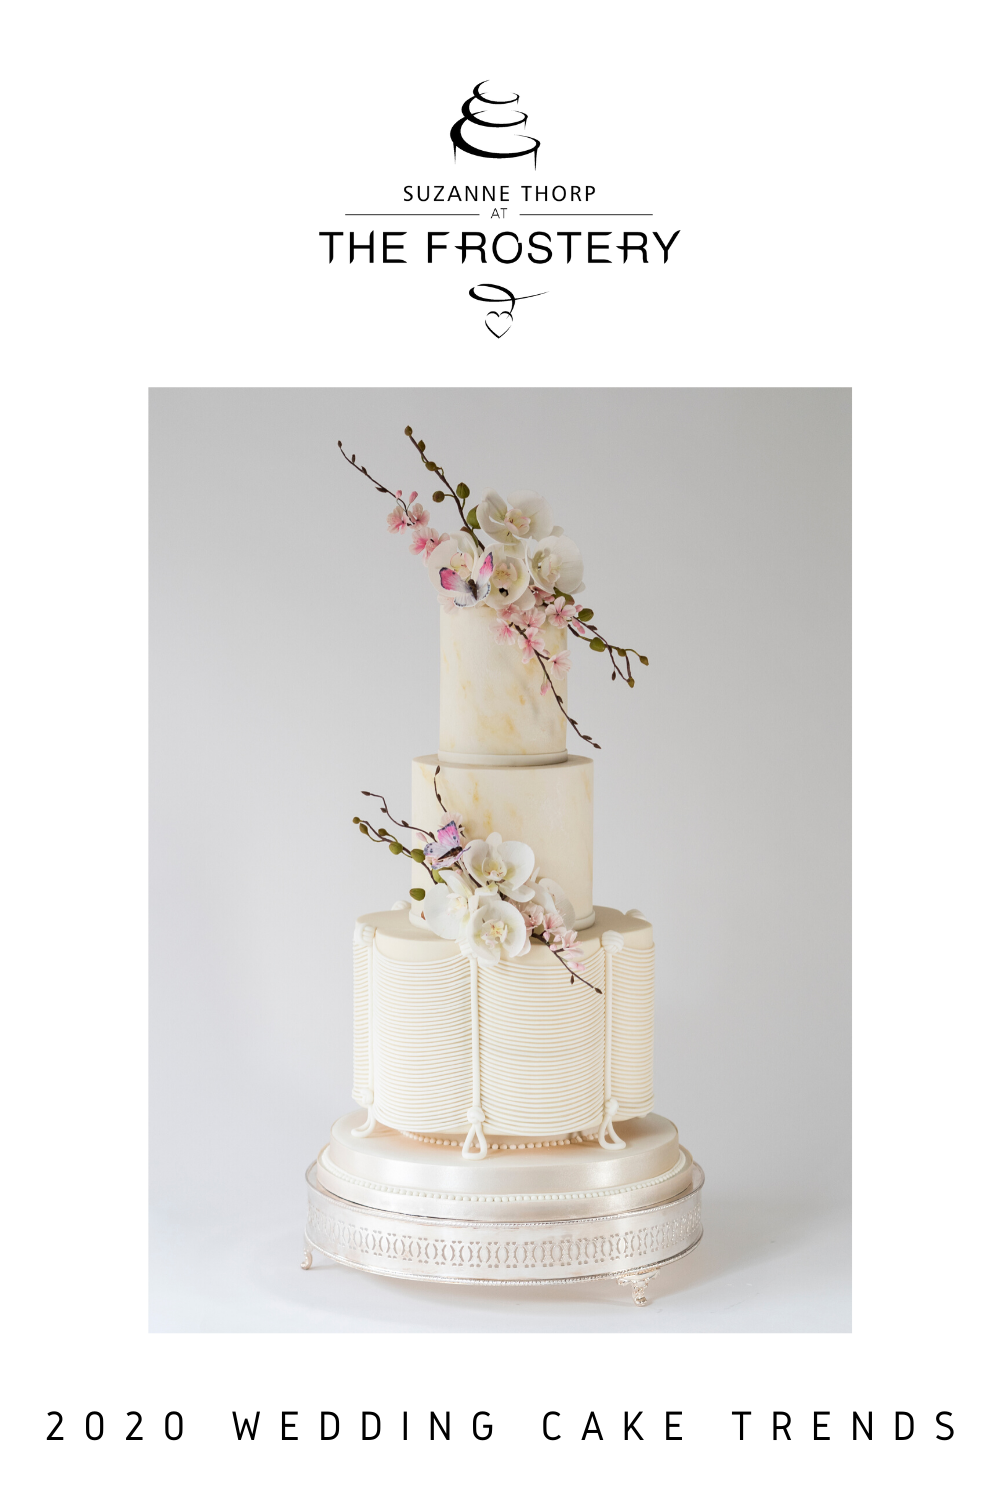 Discover our predictions for the top wedding cake trends